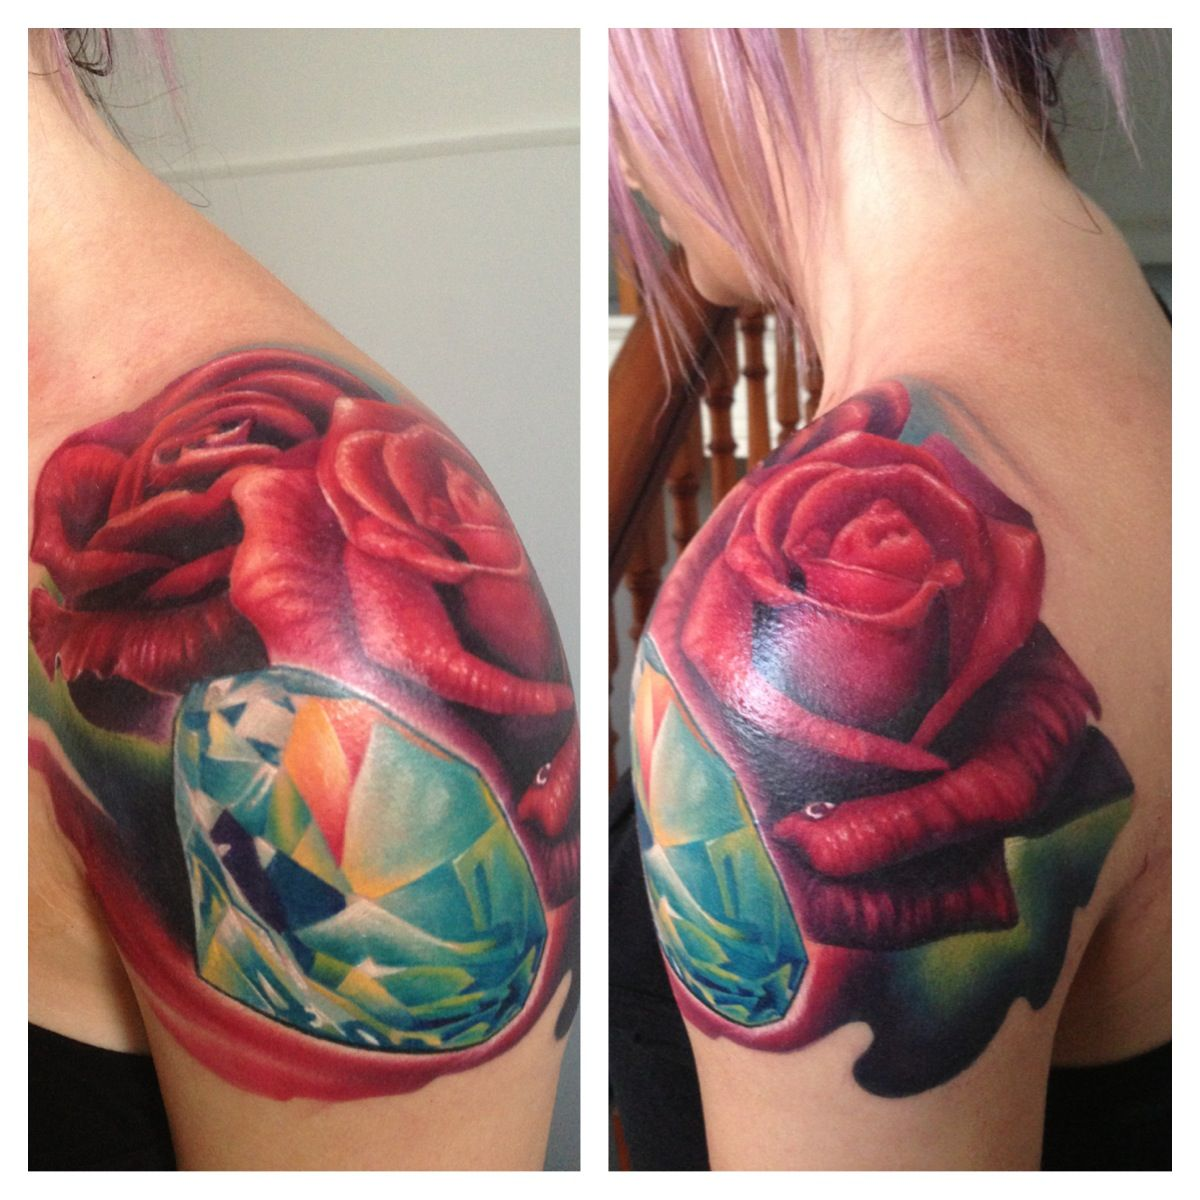 My roses and diamond tattoo :)